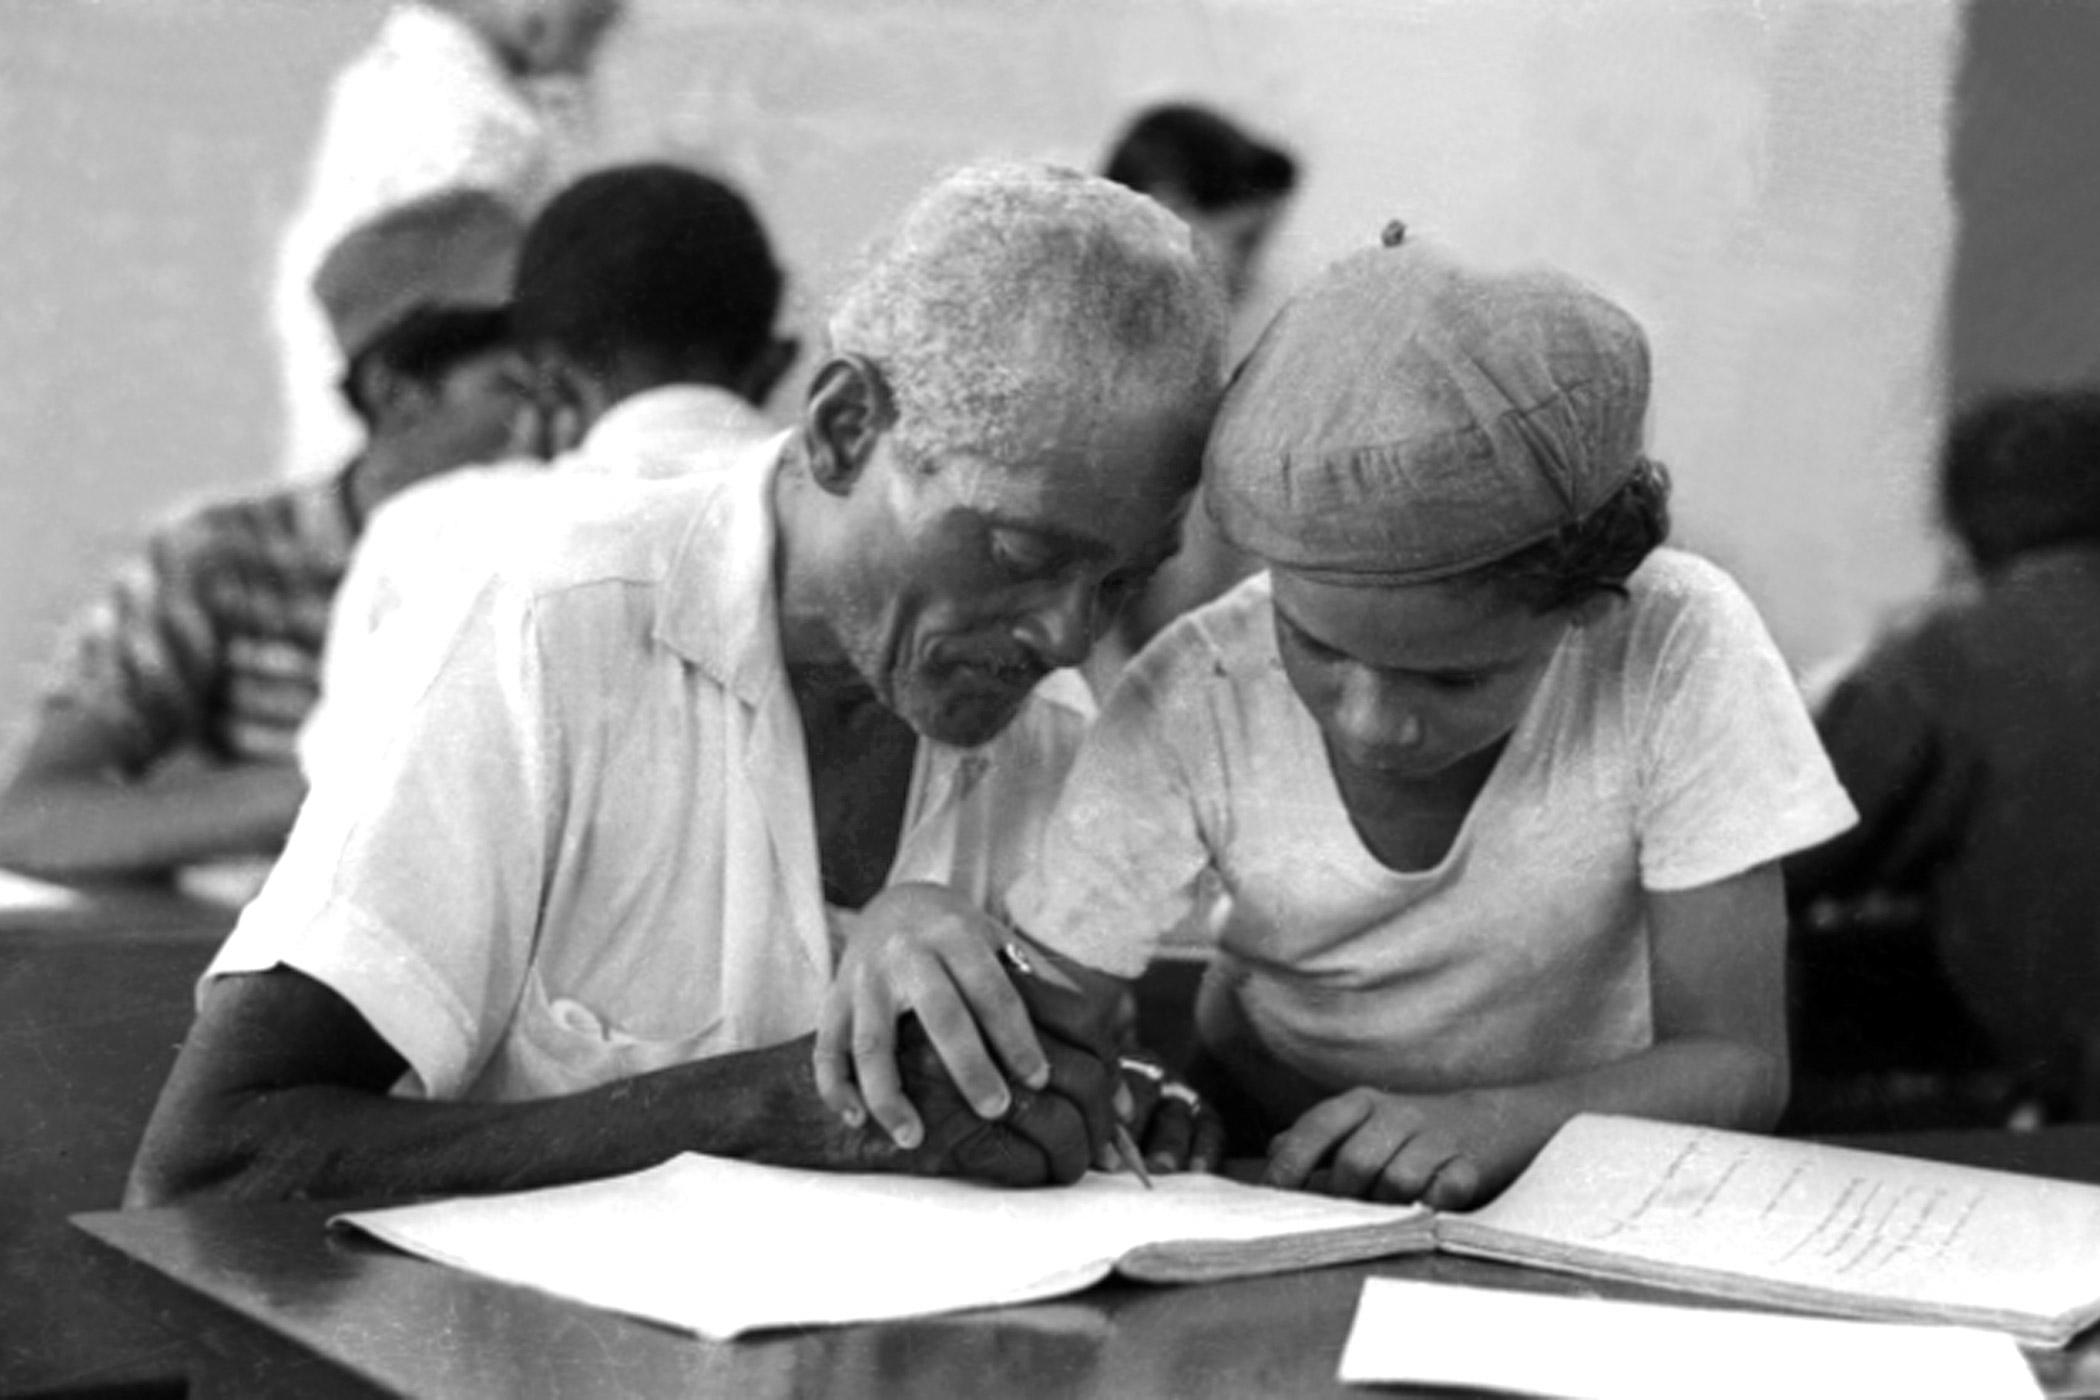 A boy teaches a man to write during a literacy campaign in Cuba in 1961.